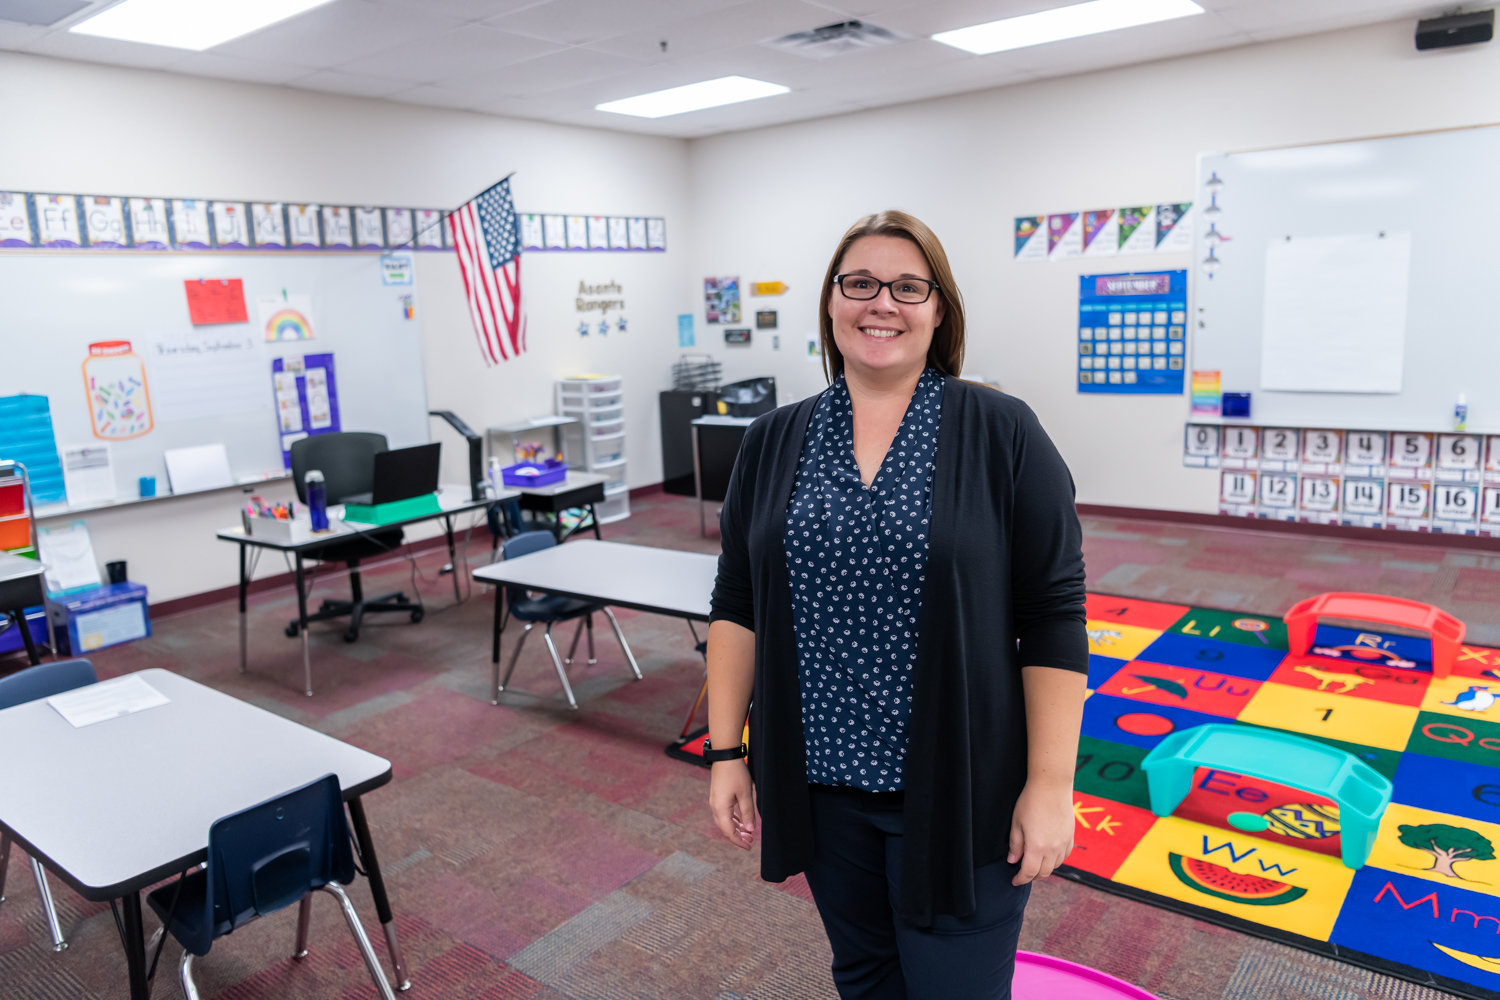 Jennifer Maddox is teaching first graders at Asante Preparatory Academy in Surprise and is excited to get back in to the classroom.